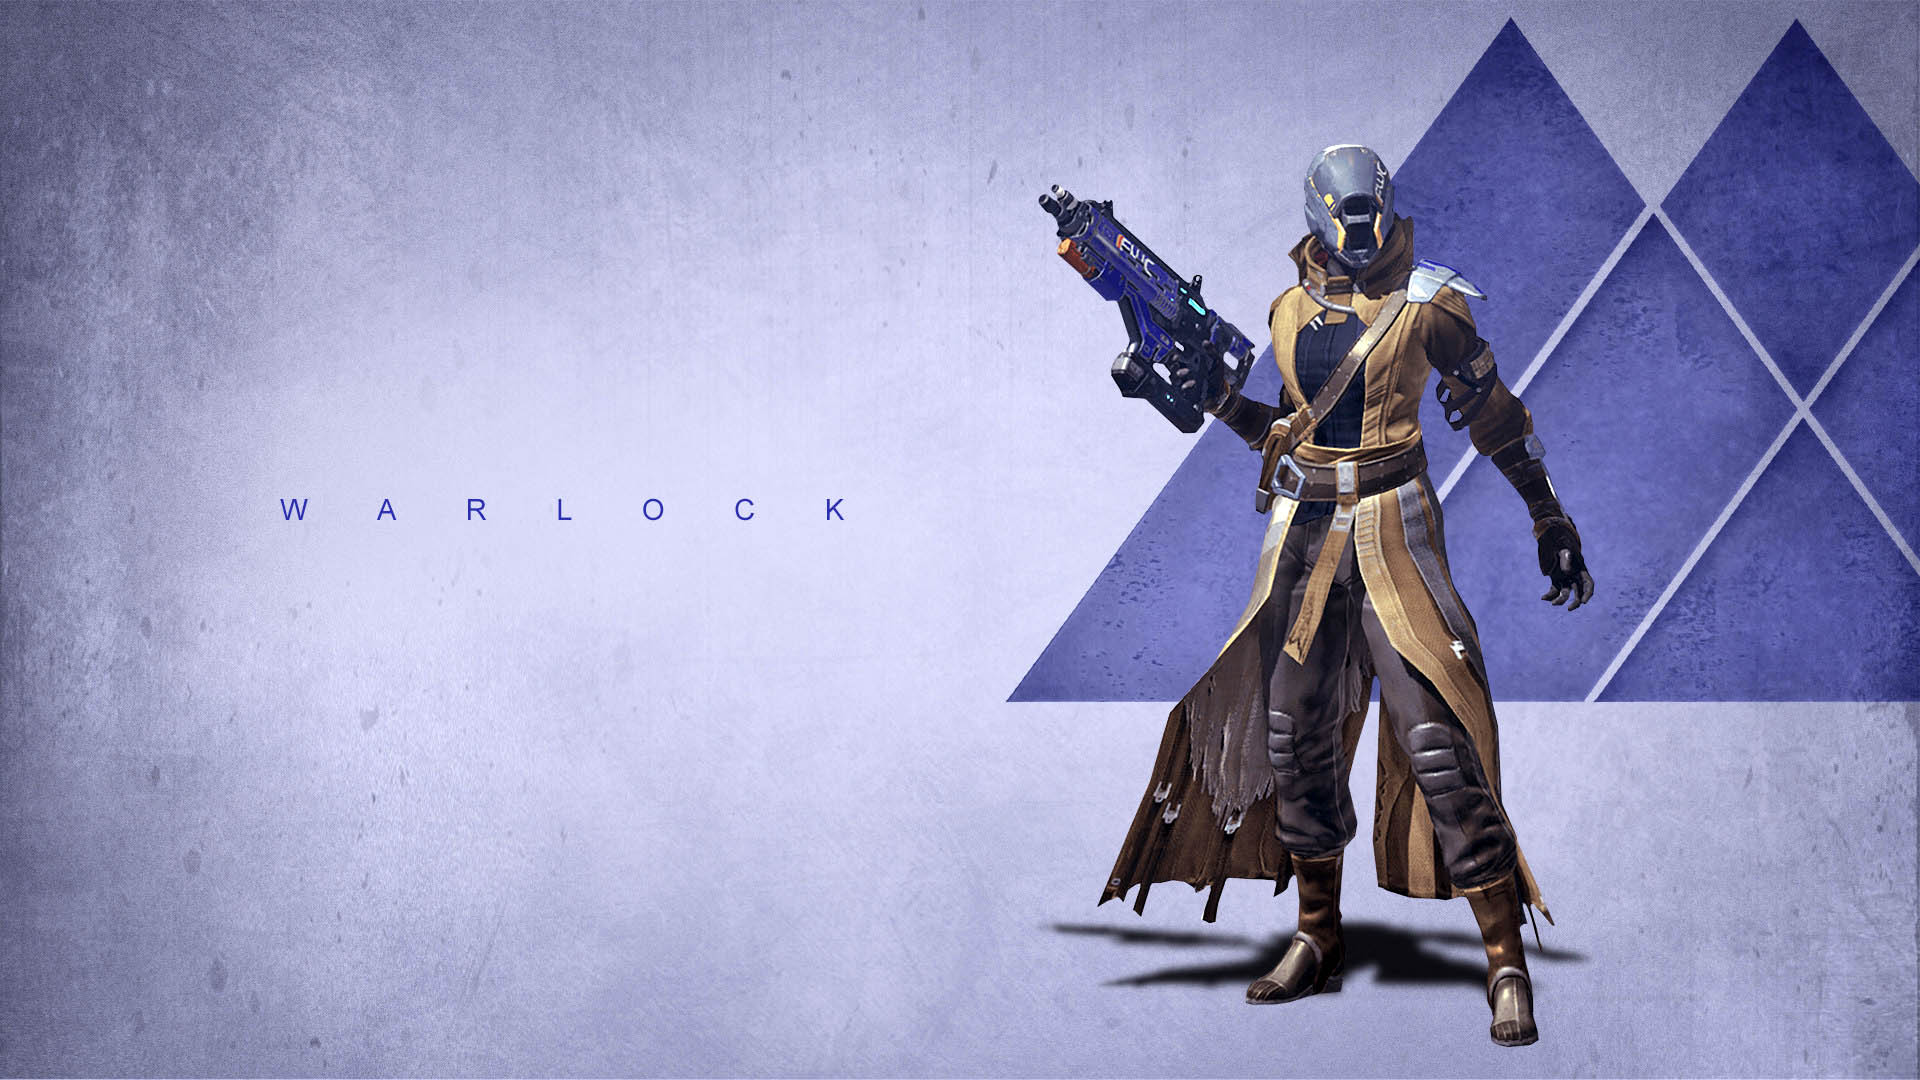 destiny warlock, hd games, 4k wallpapers, images, backgrounds